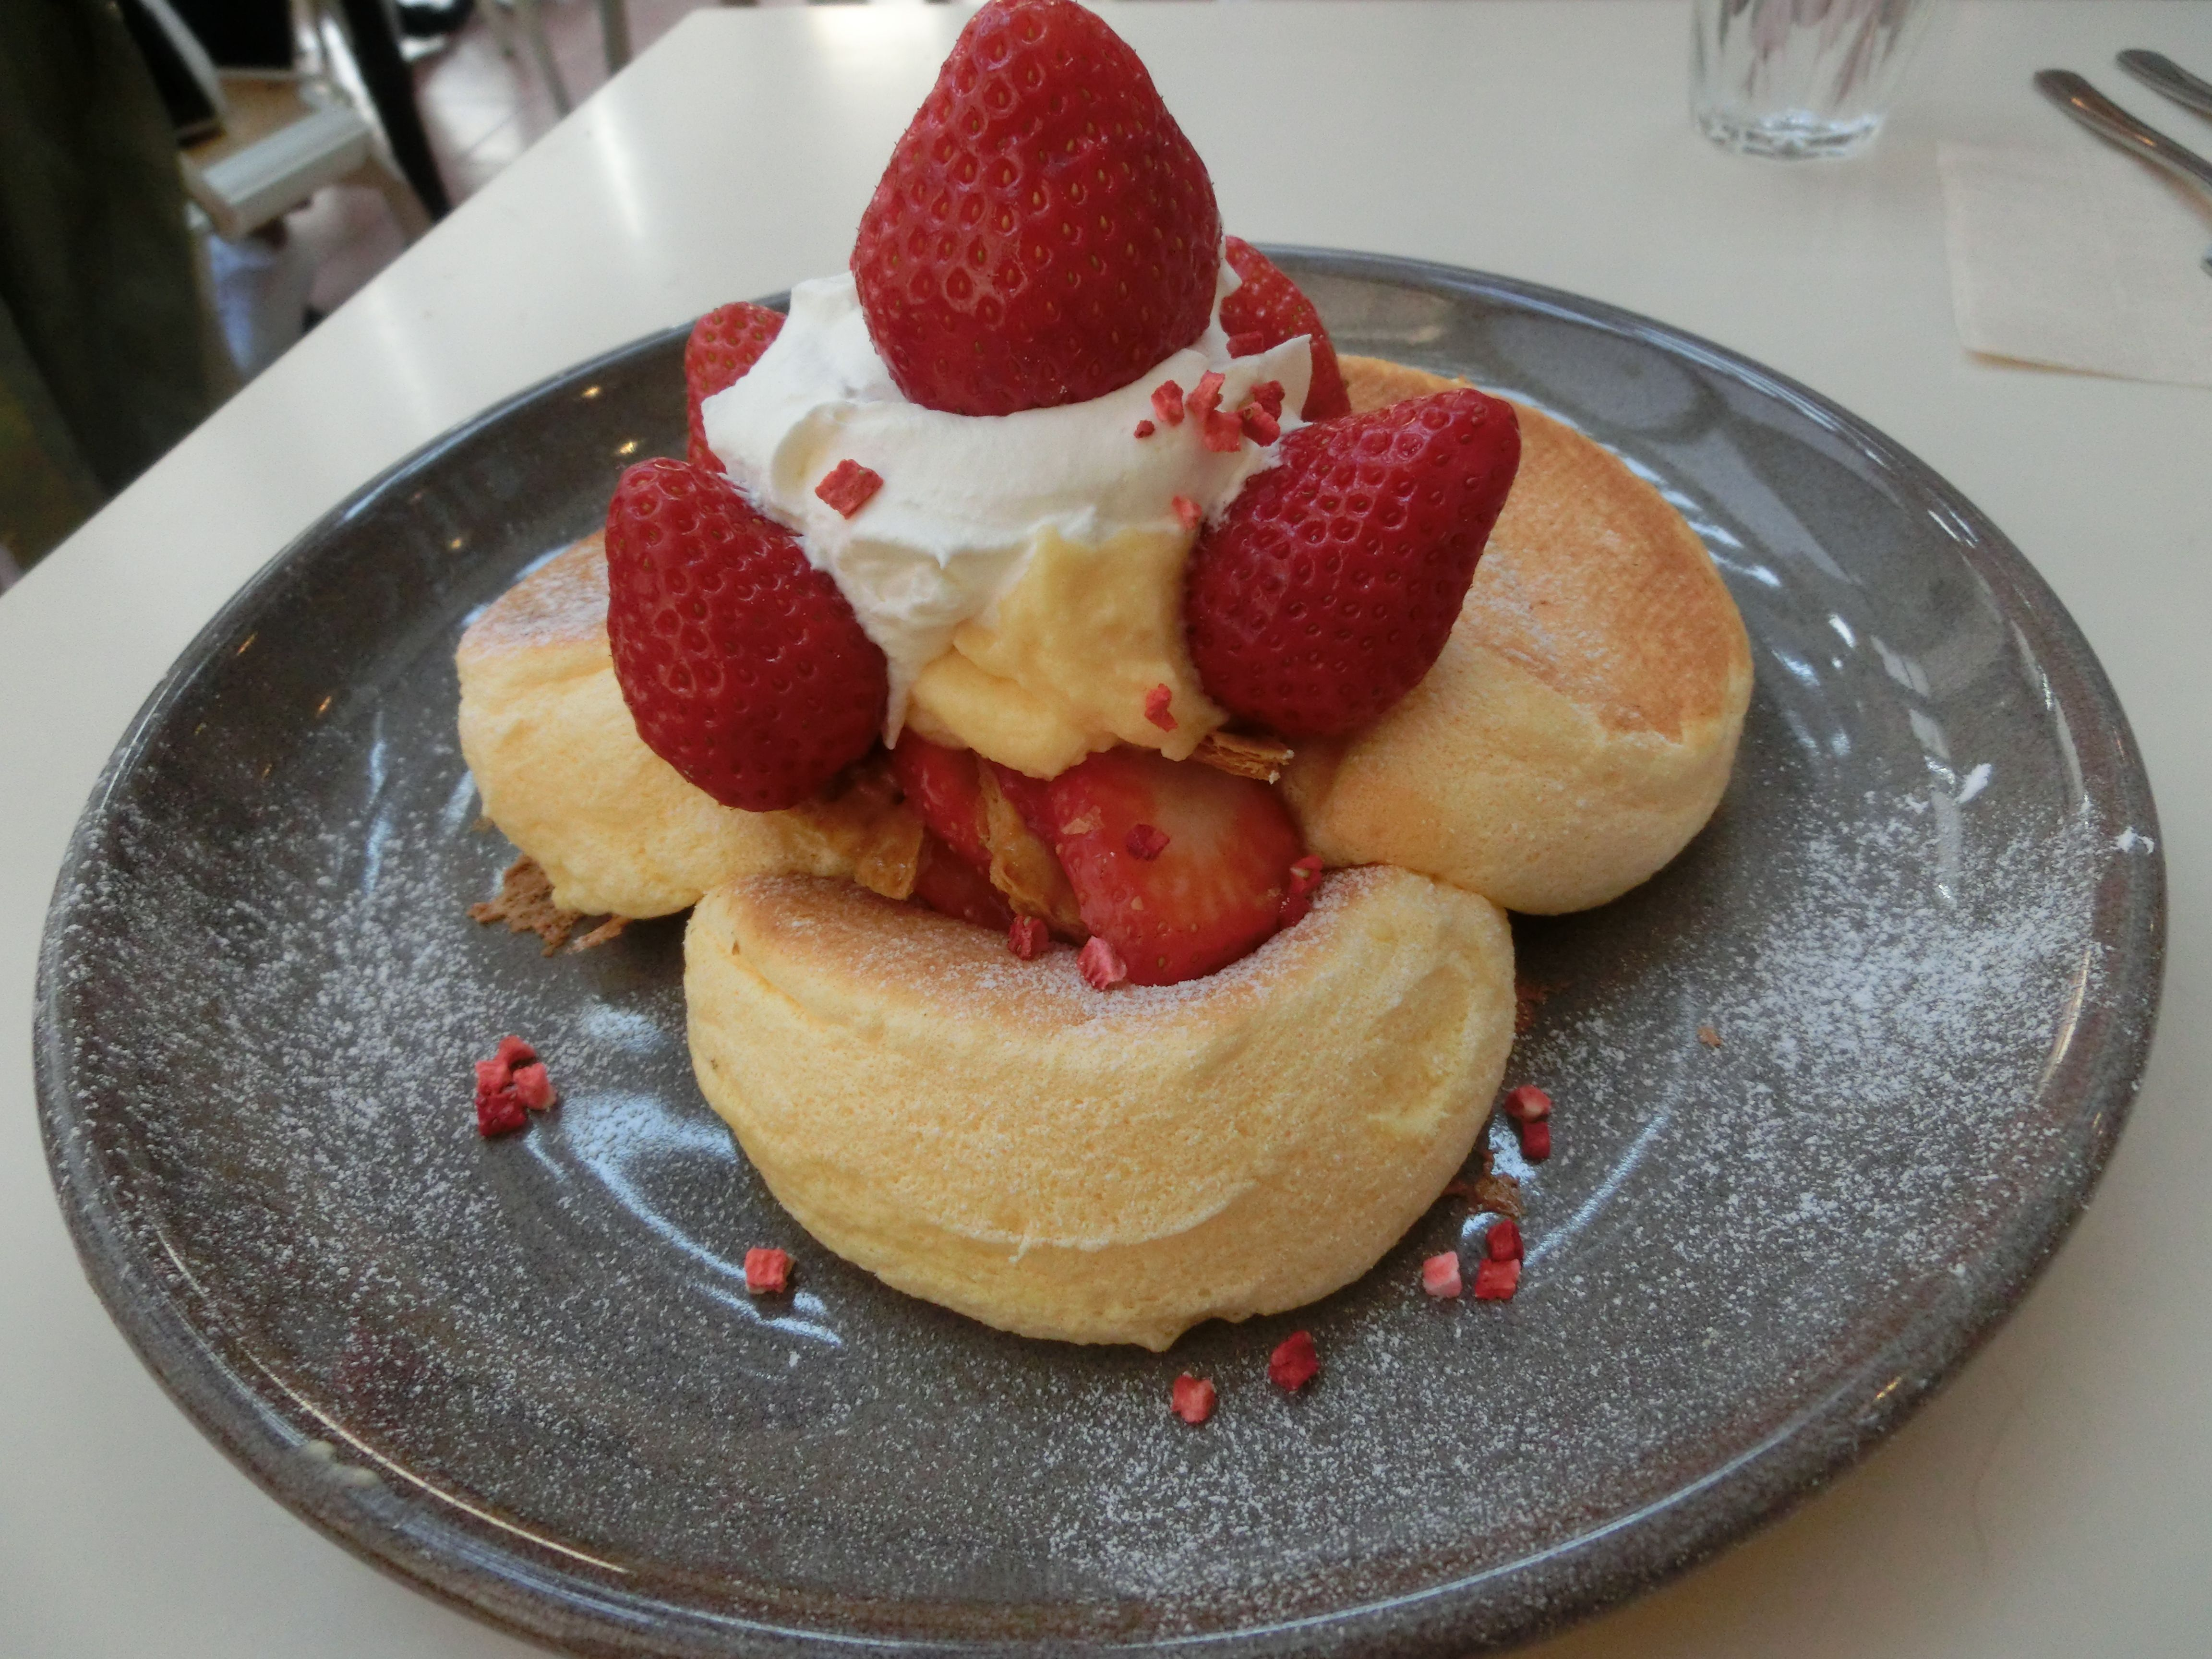 [I ate] souffle pancakes with strawberries and custard  ...